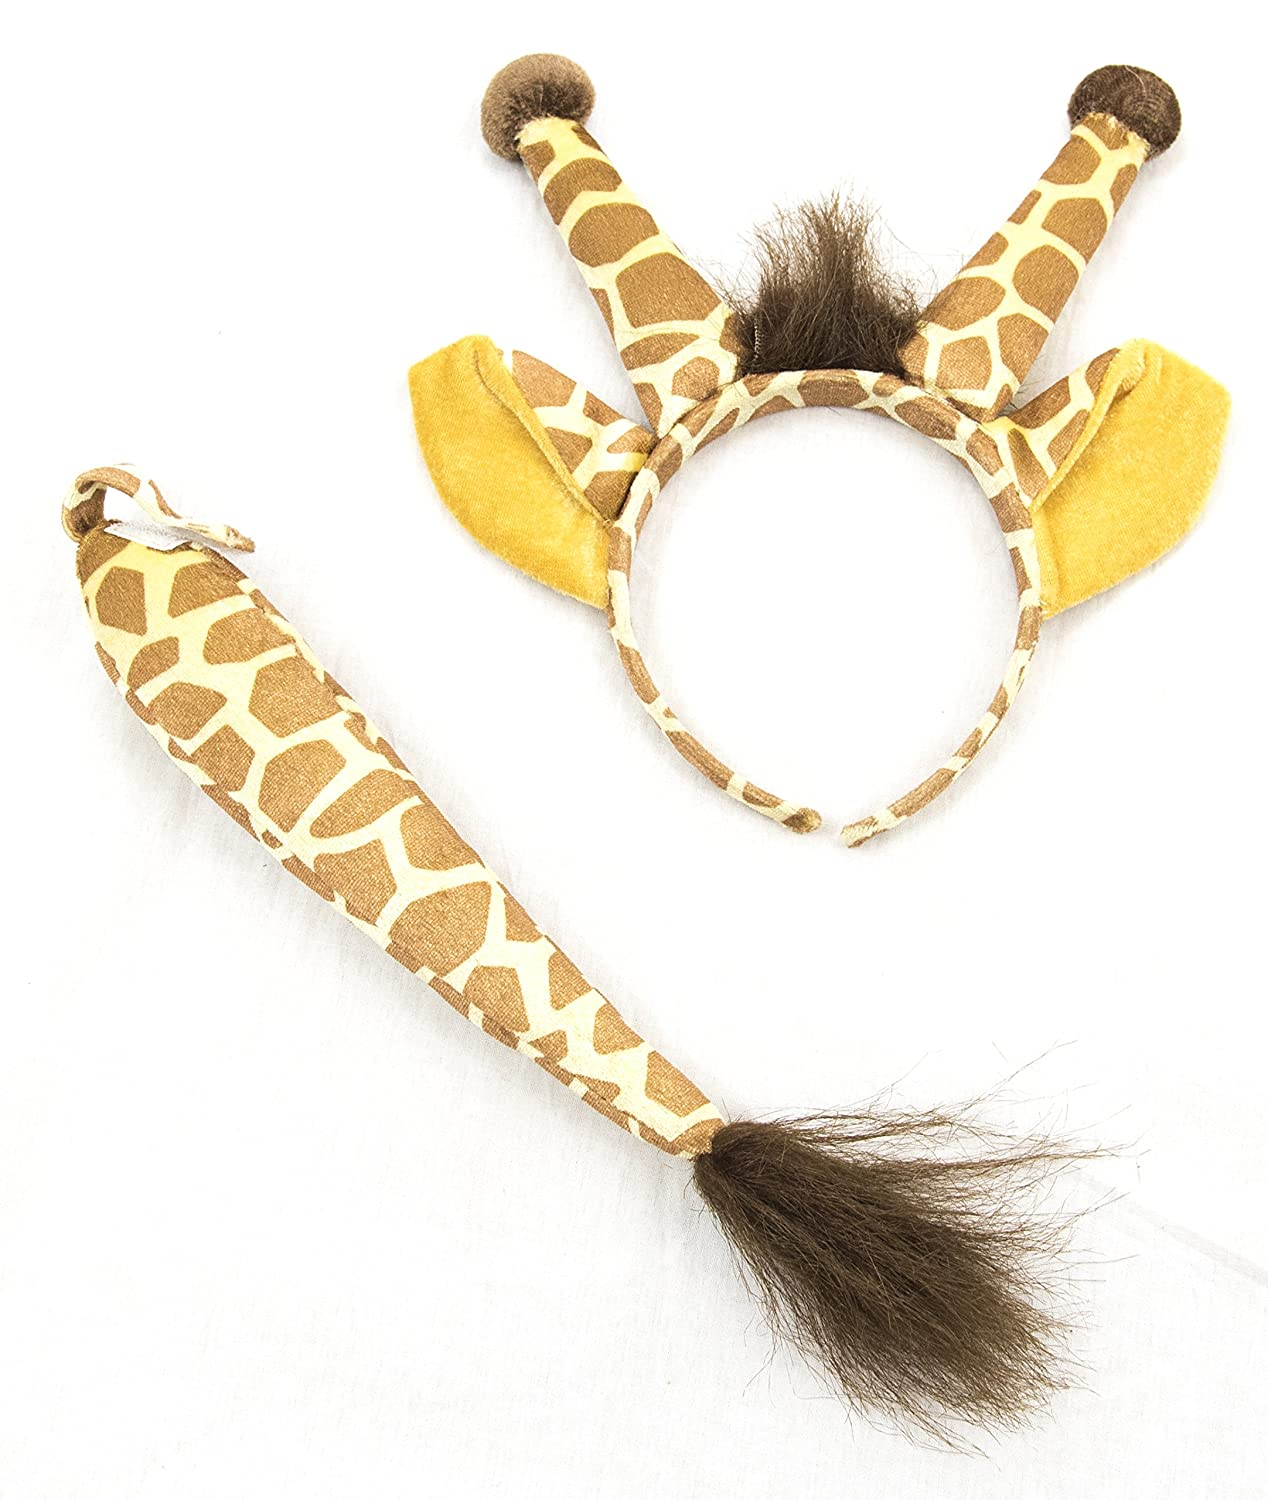 Squirrel Products Giraffe Headband Ears and Tail Set Costume Accessories One Size